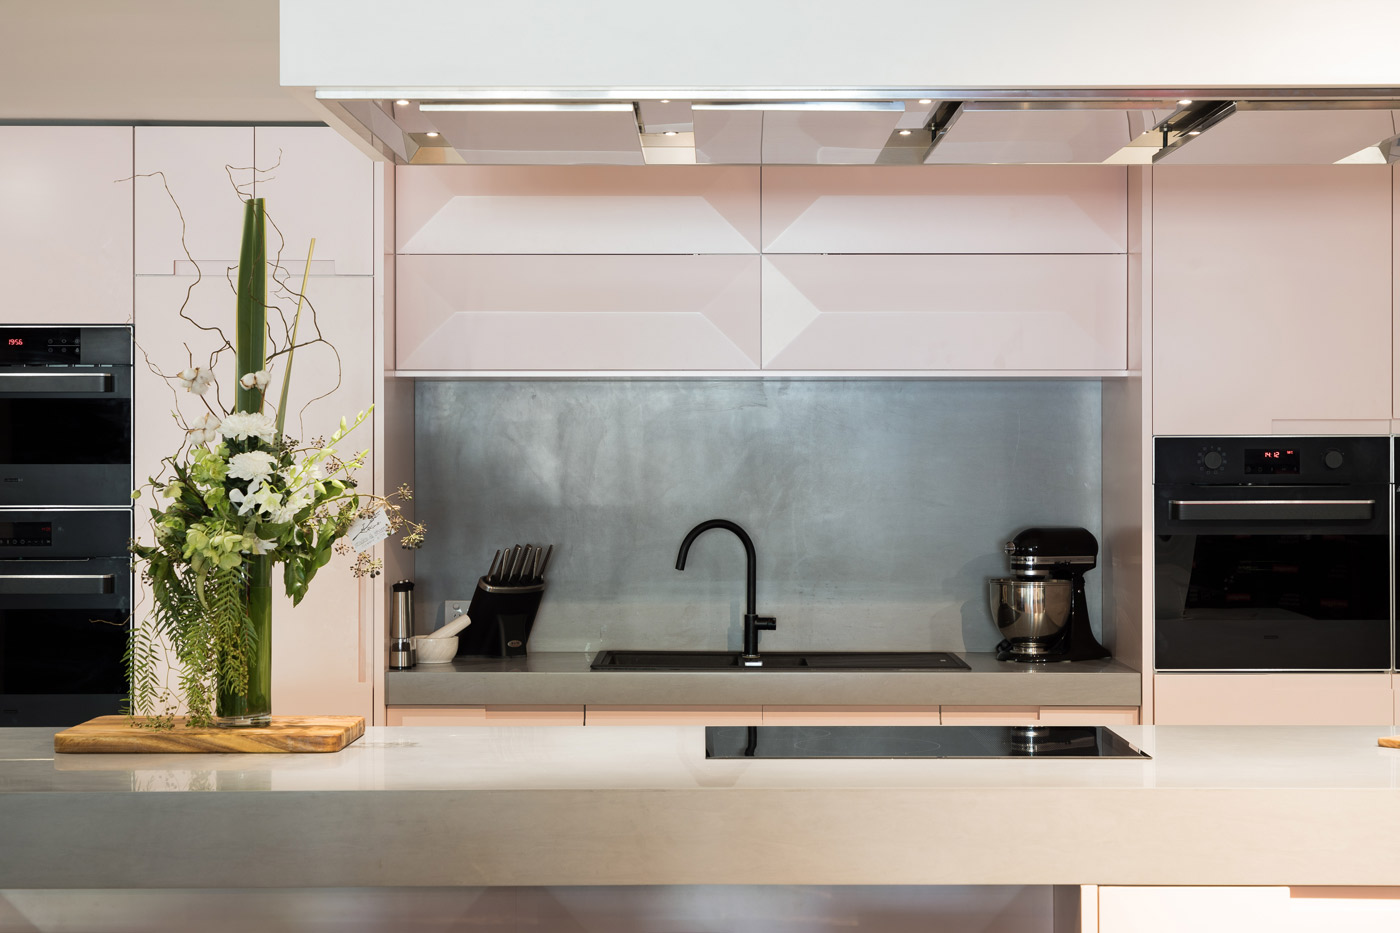 Stunning, sophisticated and silent. A beautiful breakthrough in rangehood technology, the innovative ceiling cassette rangehoods will weave class and style throughout your kitchen design.